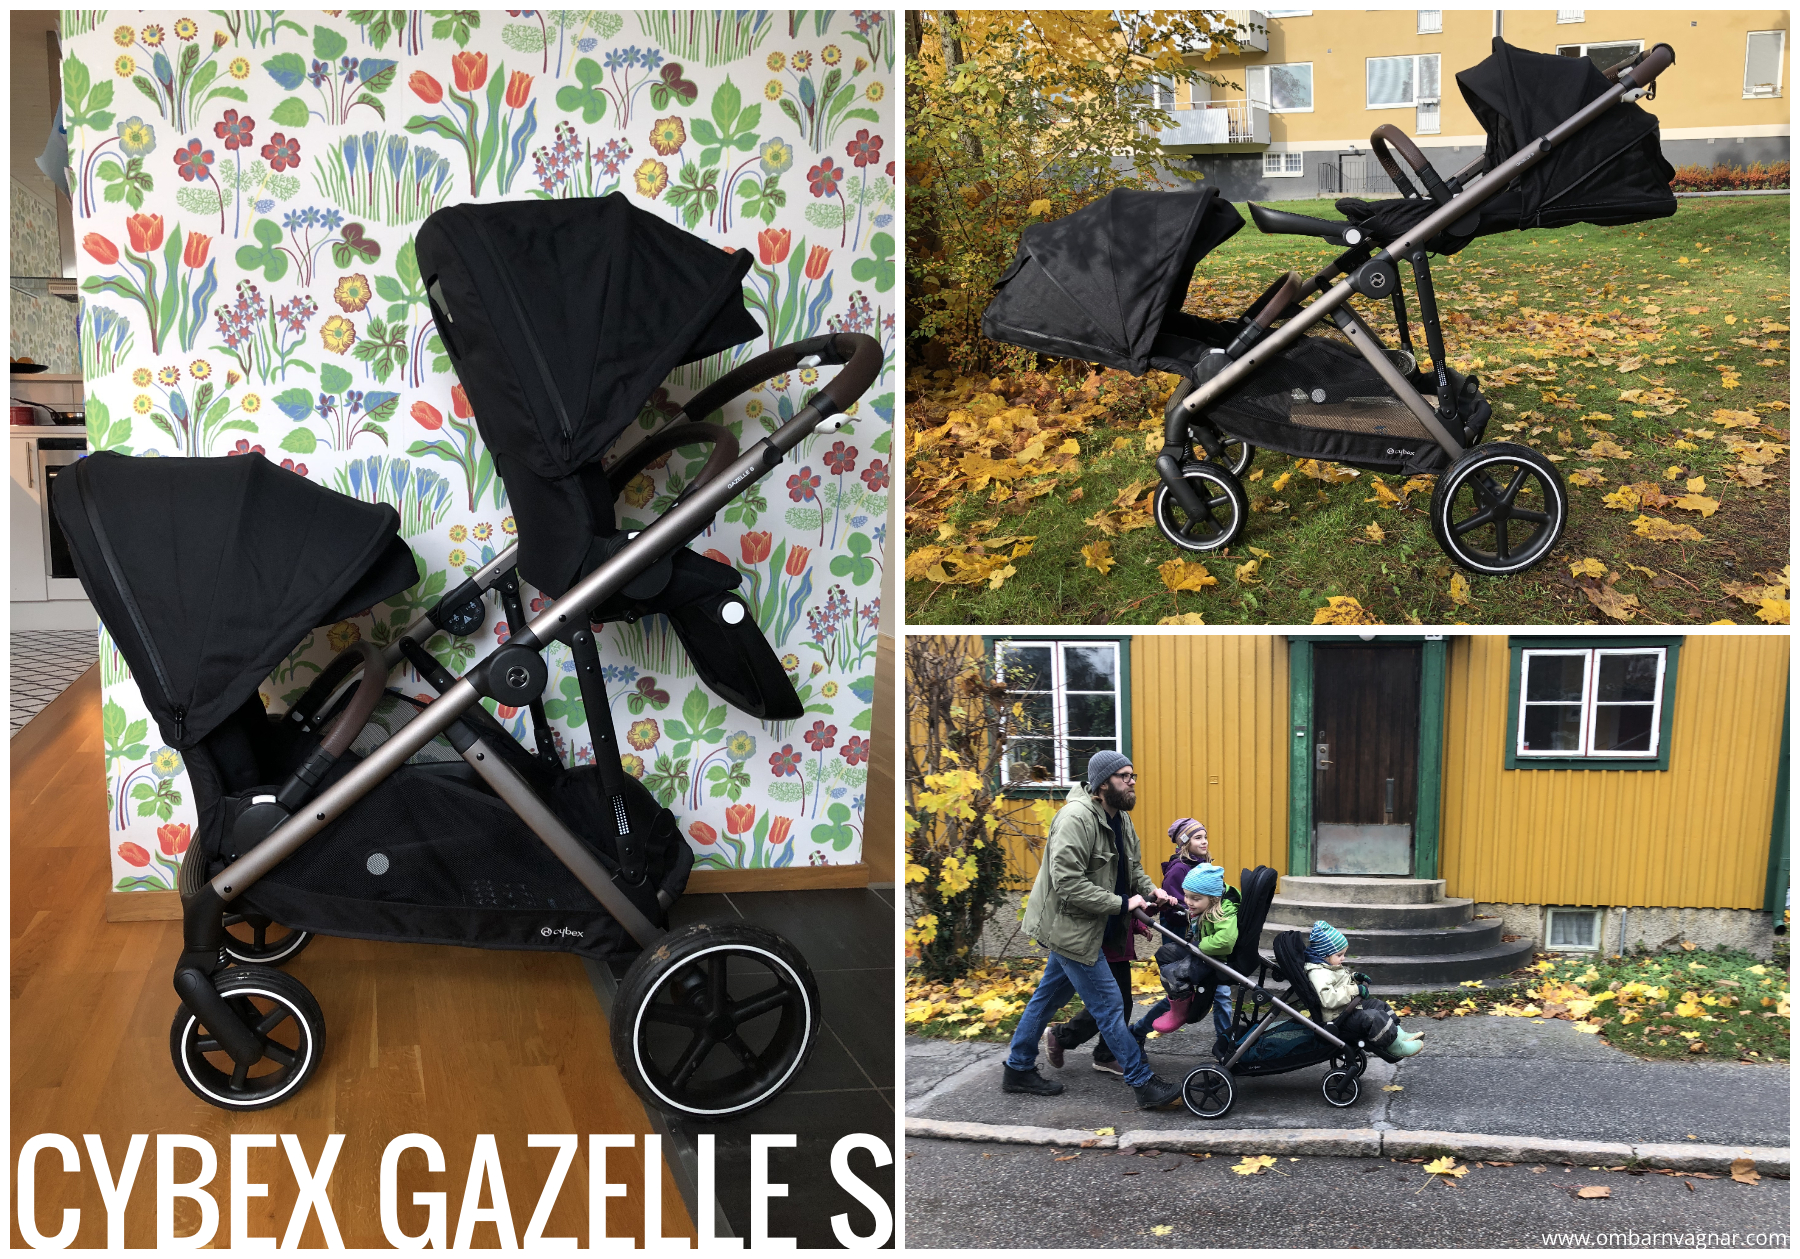 Recension av Cybex Gazelle S